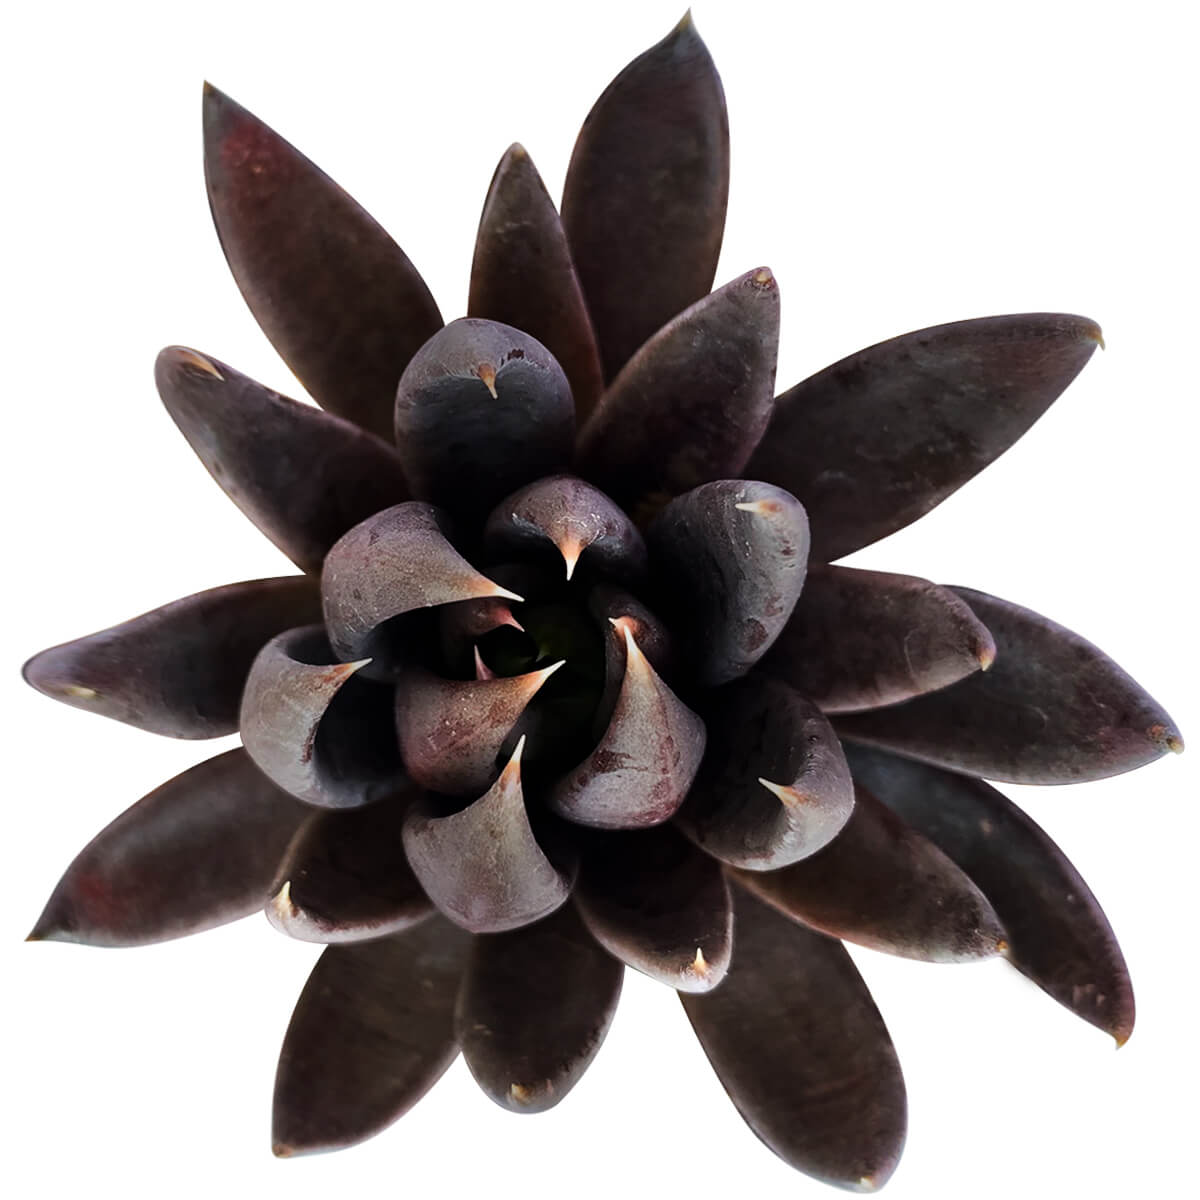 Echeveria Black Knight, indoor succulents, Succulents shop near me, succulents shop in California, monthly succulents, succulent plant, succulents store in CA, Succulents, how to grow succulents, Echeveria Black Knight in California, How to grow Echeveria Black Knight